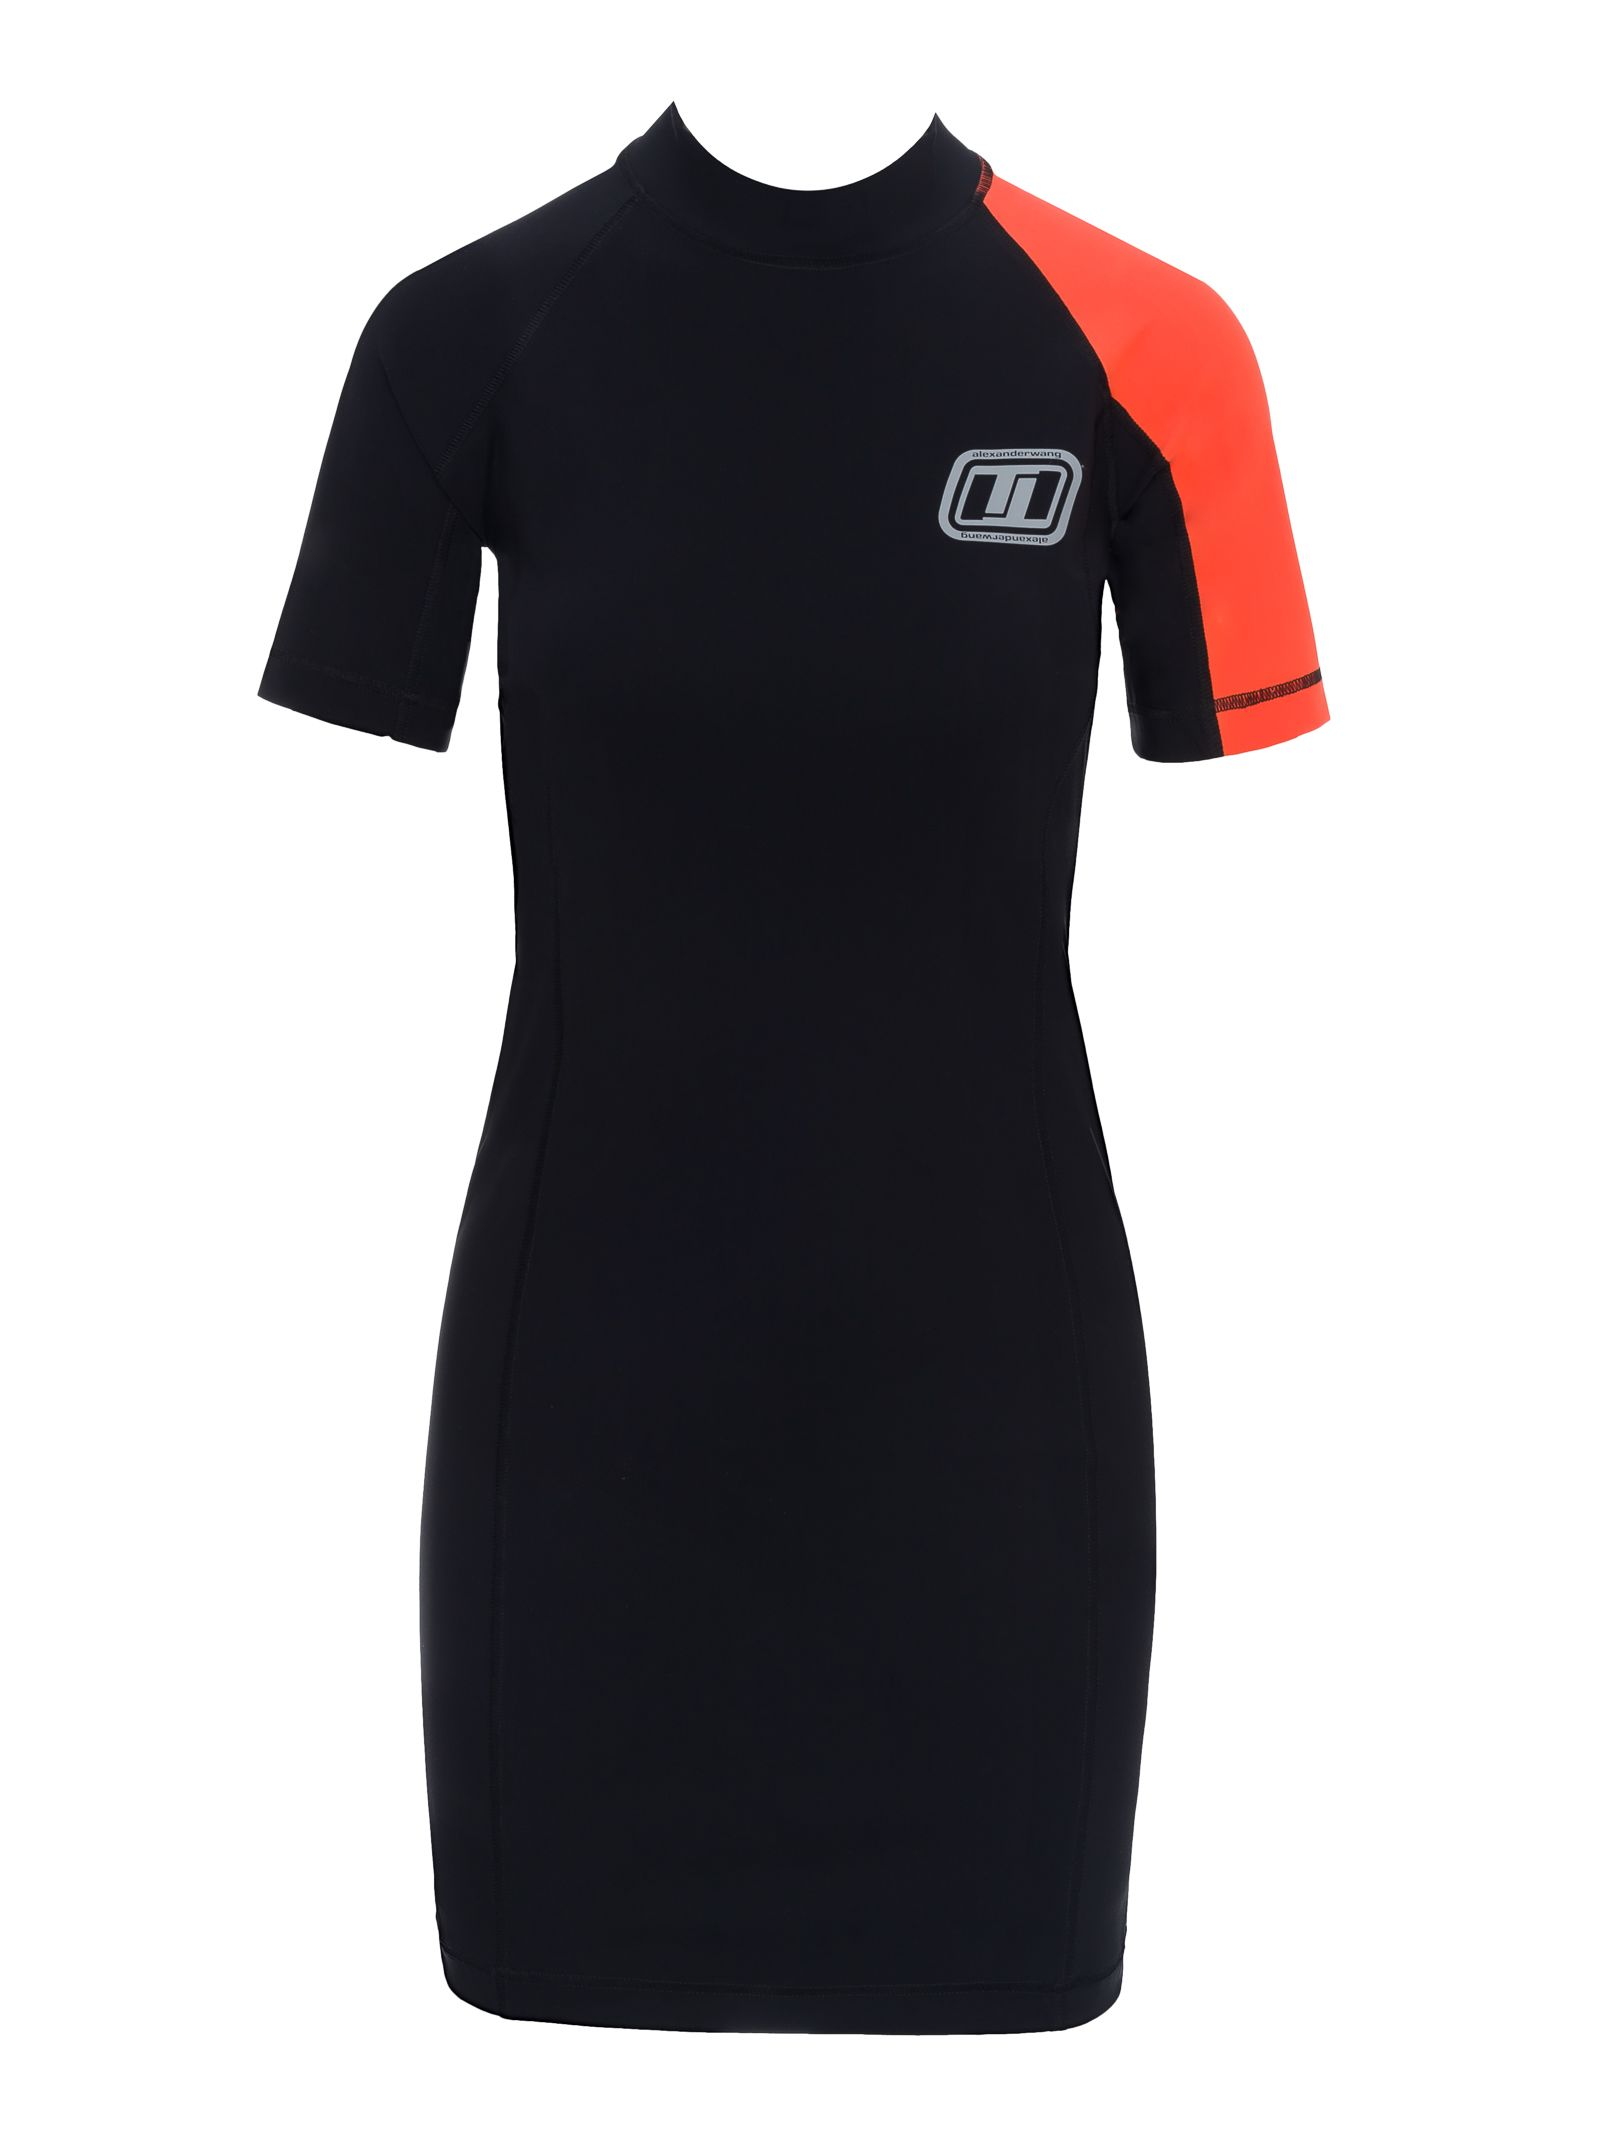 T By Alexander Wang T By Alexander Wang Dress Swim Black Orange